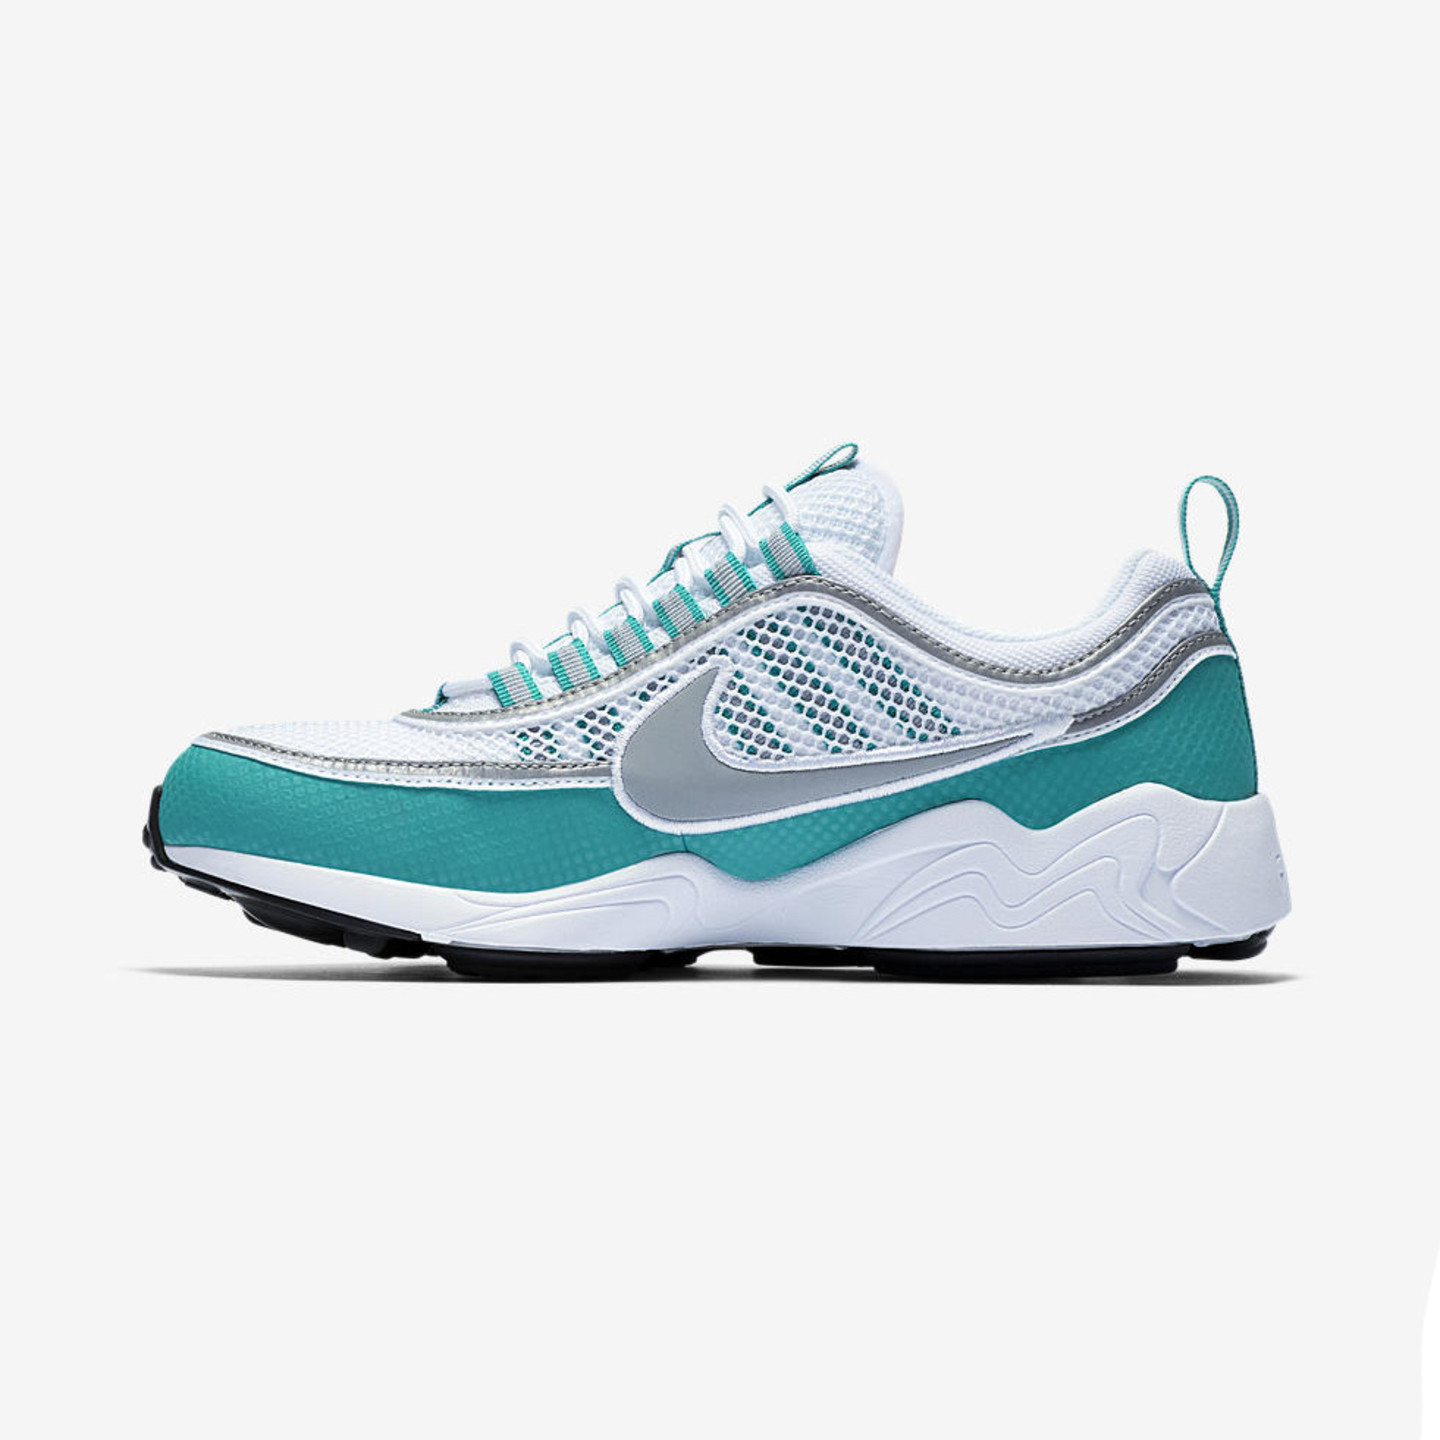 Nike Air Zoom Spiridon White / Silver / Turbo Green / Laser Orange 849776-102-45